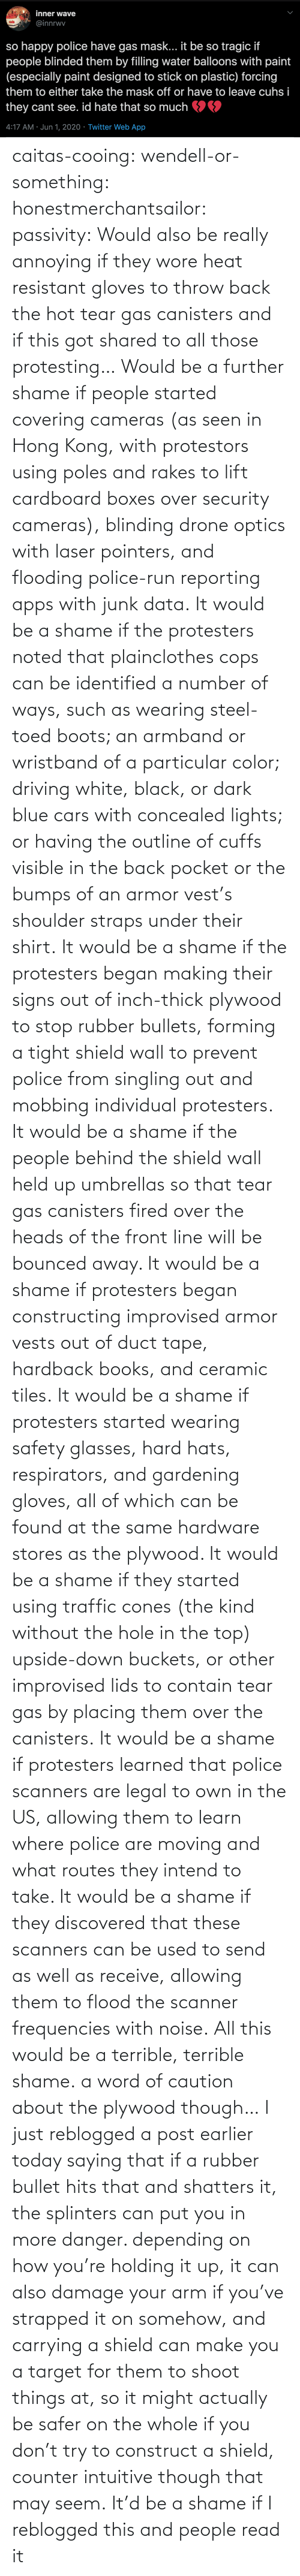 Police: caitas-cooing:  wendell-or-something: honestmerchantsailor:  passivity: Would also be really annoying if they wore heat resistant gloves to throw back the hot tear gas canisters and if this got shared to all those protesting… Would be a further shame if people started covering cameras (as seen in Hong Kong, with protestors using poles and rakes to lift cardboard boxes over security cameras), blinding drone optics with laser pointers, and flooding police-run reporting apps with junk data. It would be a shame if the protesters noted that plainclothes cops can be identified a number of ways, such as wearing steel-toed boots; an armband or wristband of a particular color; driving white, black, or dark blue cars with concealed lights; or having the outline of cuffs visible in the back pocket or the bumps of an armor vest's shoulder straps under their shirt. It would be a shame if the protesters began making their signs out of inch-thick plywood to stop rubber bullets, forming a tight shield wall to prevent police from singling out and mobbing individual protesters. It would be a shame if the people behind the shield wall held up umbrellas so that tear gas canisters fired over the heads of the front line will be bounced away. It would be a shame if protesters began constructing improvised armor vests out of duct tape, hardback books, and ceramic tiles. It would be a shame if protesters started wearing safety glasses, hard hats, respirators, and gardening gloves, all of which can be found at the same hardware stores as the plywood. It would be a shame if they started using traffic cones (the kind without the hole in the top) upside-down buckets, or other improvised lids to contain tear gas by placing them over the canisters. It would be a shame if protesters learned that police scanners are legal to own in the US, allowing them to learn where police are moving and what routes they intend to take. It would be a shame if they discovered that these scanners can be used to send as well as receive, allowing them to flood the scanner frequencies with noise. All this would be a terrible, terrible shame.    a word of caution about the plywood though… I just reblogged a post earlier today saying that if a rubber bullet hits that and shatters it, the splinters can put you in more danger. depending on how you're holding it up, it can also damage your arm if you've strapped it on somehow, and carrying a shield can make you a target for them to shoot things at, so it might actually be safer on the whole if you don't try to construct a shield, counter intuitive though that may seem.    It'd be a shame if I reblogged this and people read it